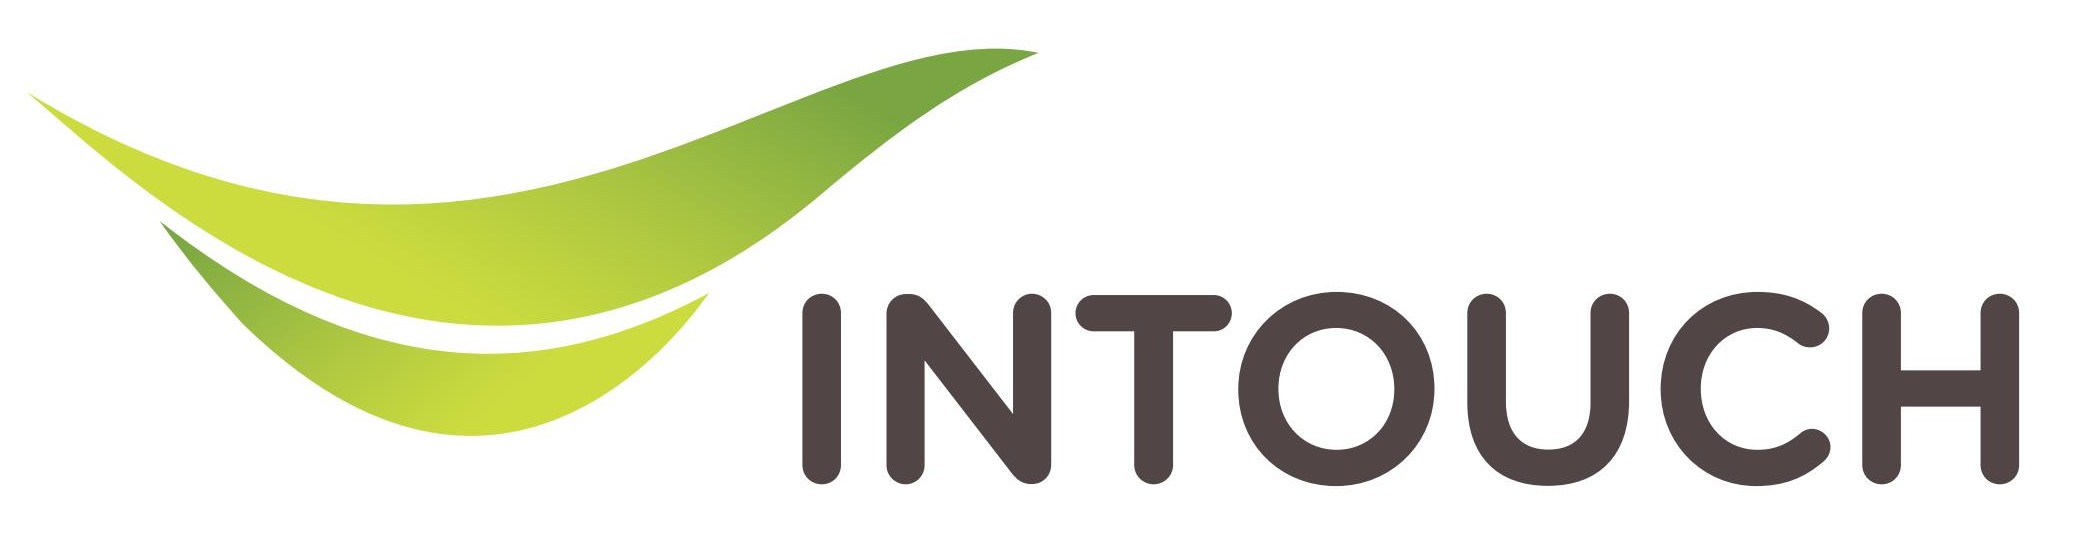 Intouch Holdings Logo